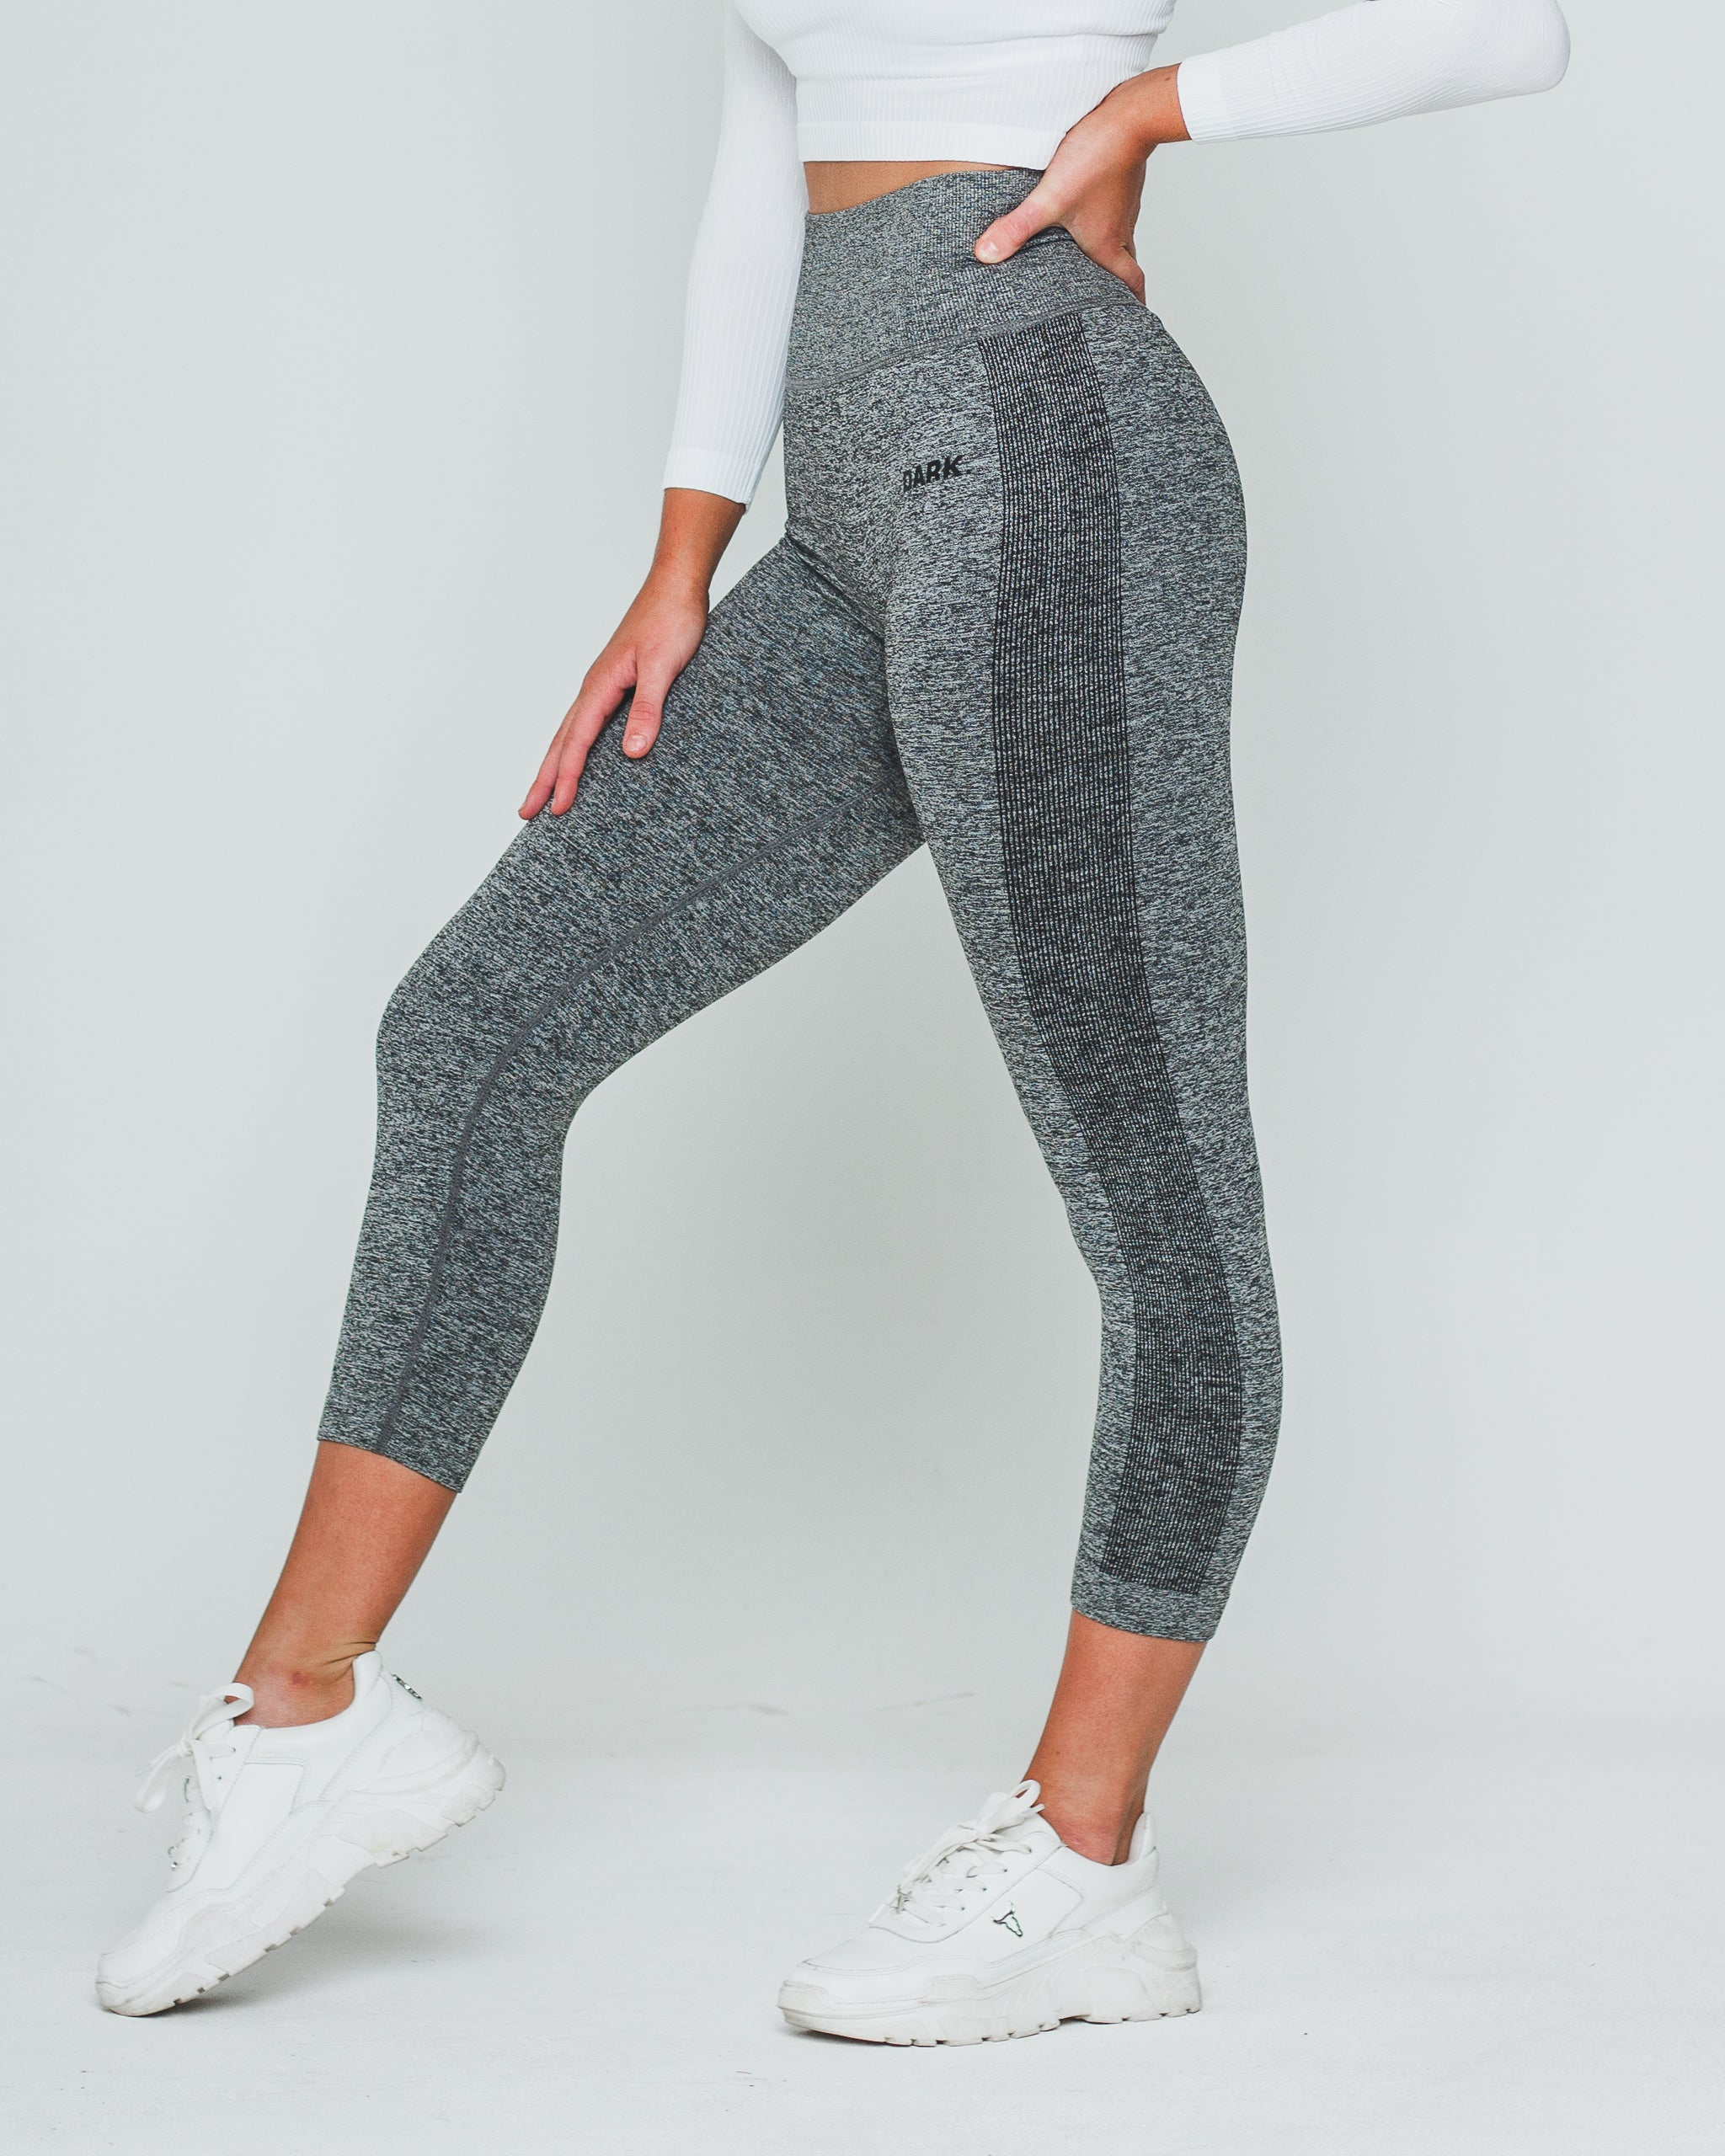 SEAMLESS SV1 CAPRI | GREY - Dark Apparel